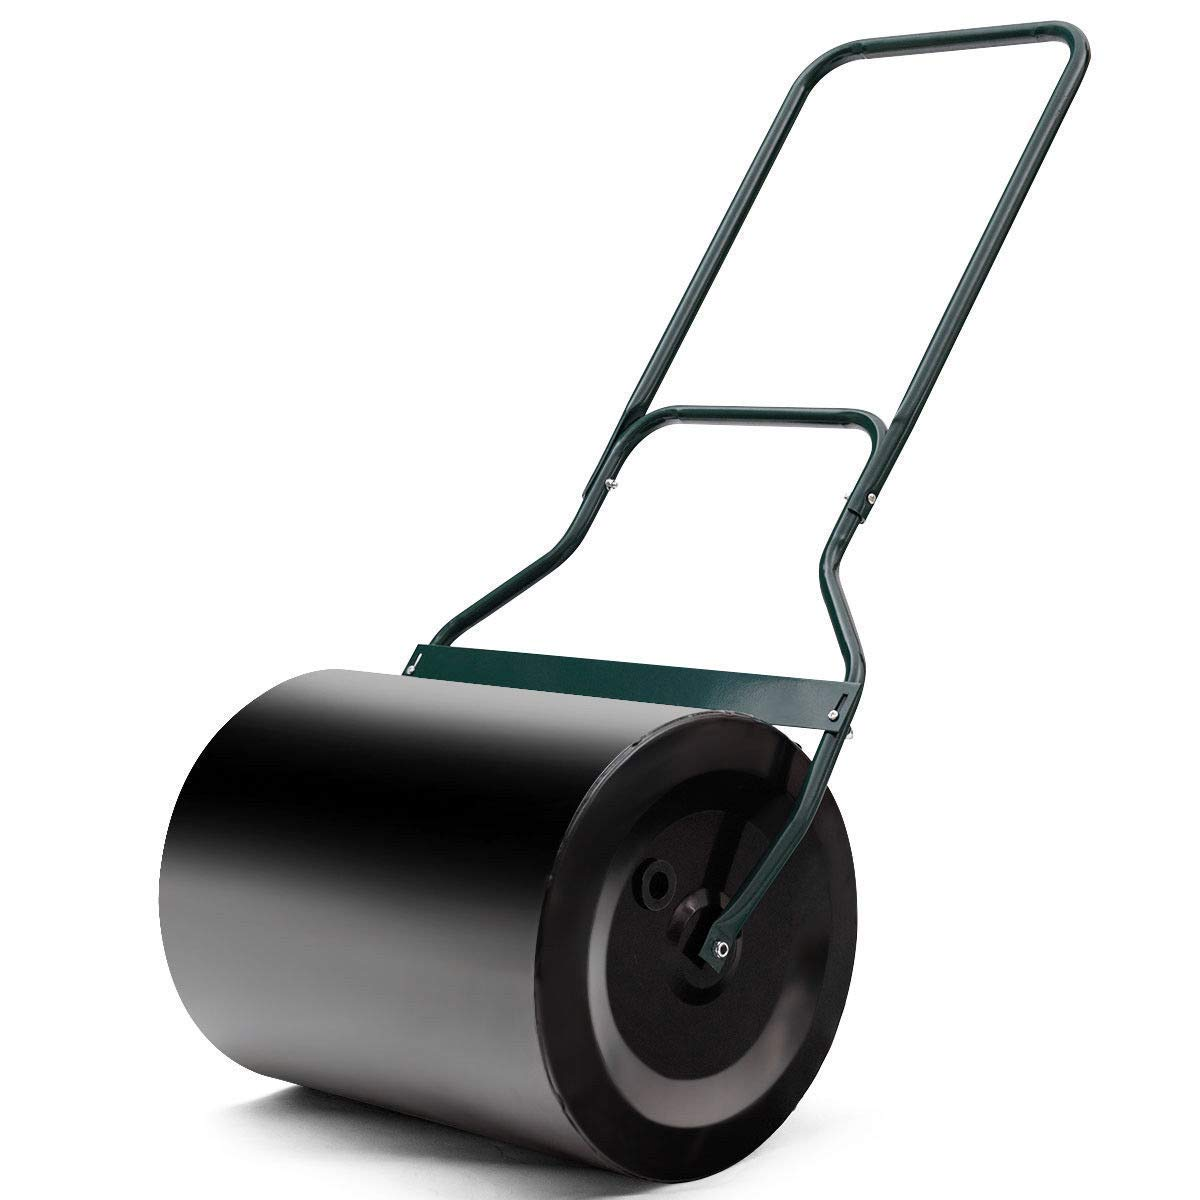 Goplus Lawn Roller Tow Behind Water Filled Roller, 16 by 20-Inch by Goplus